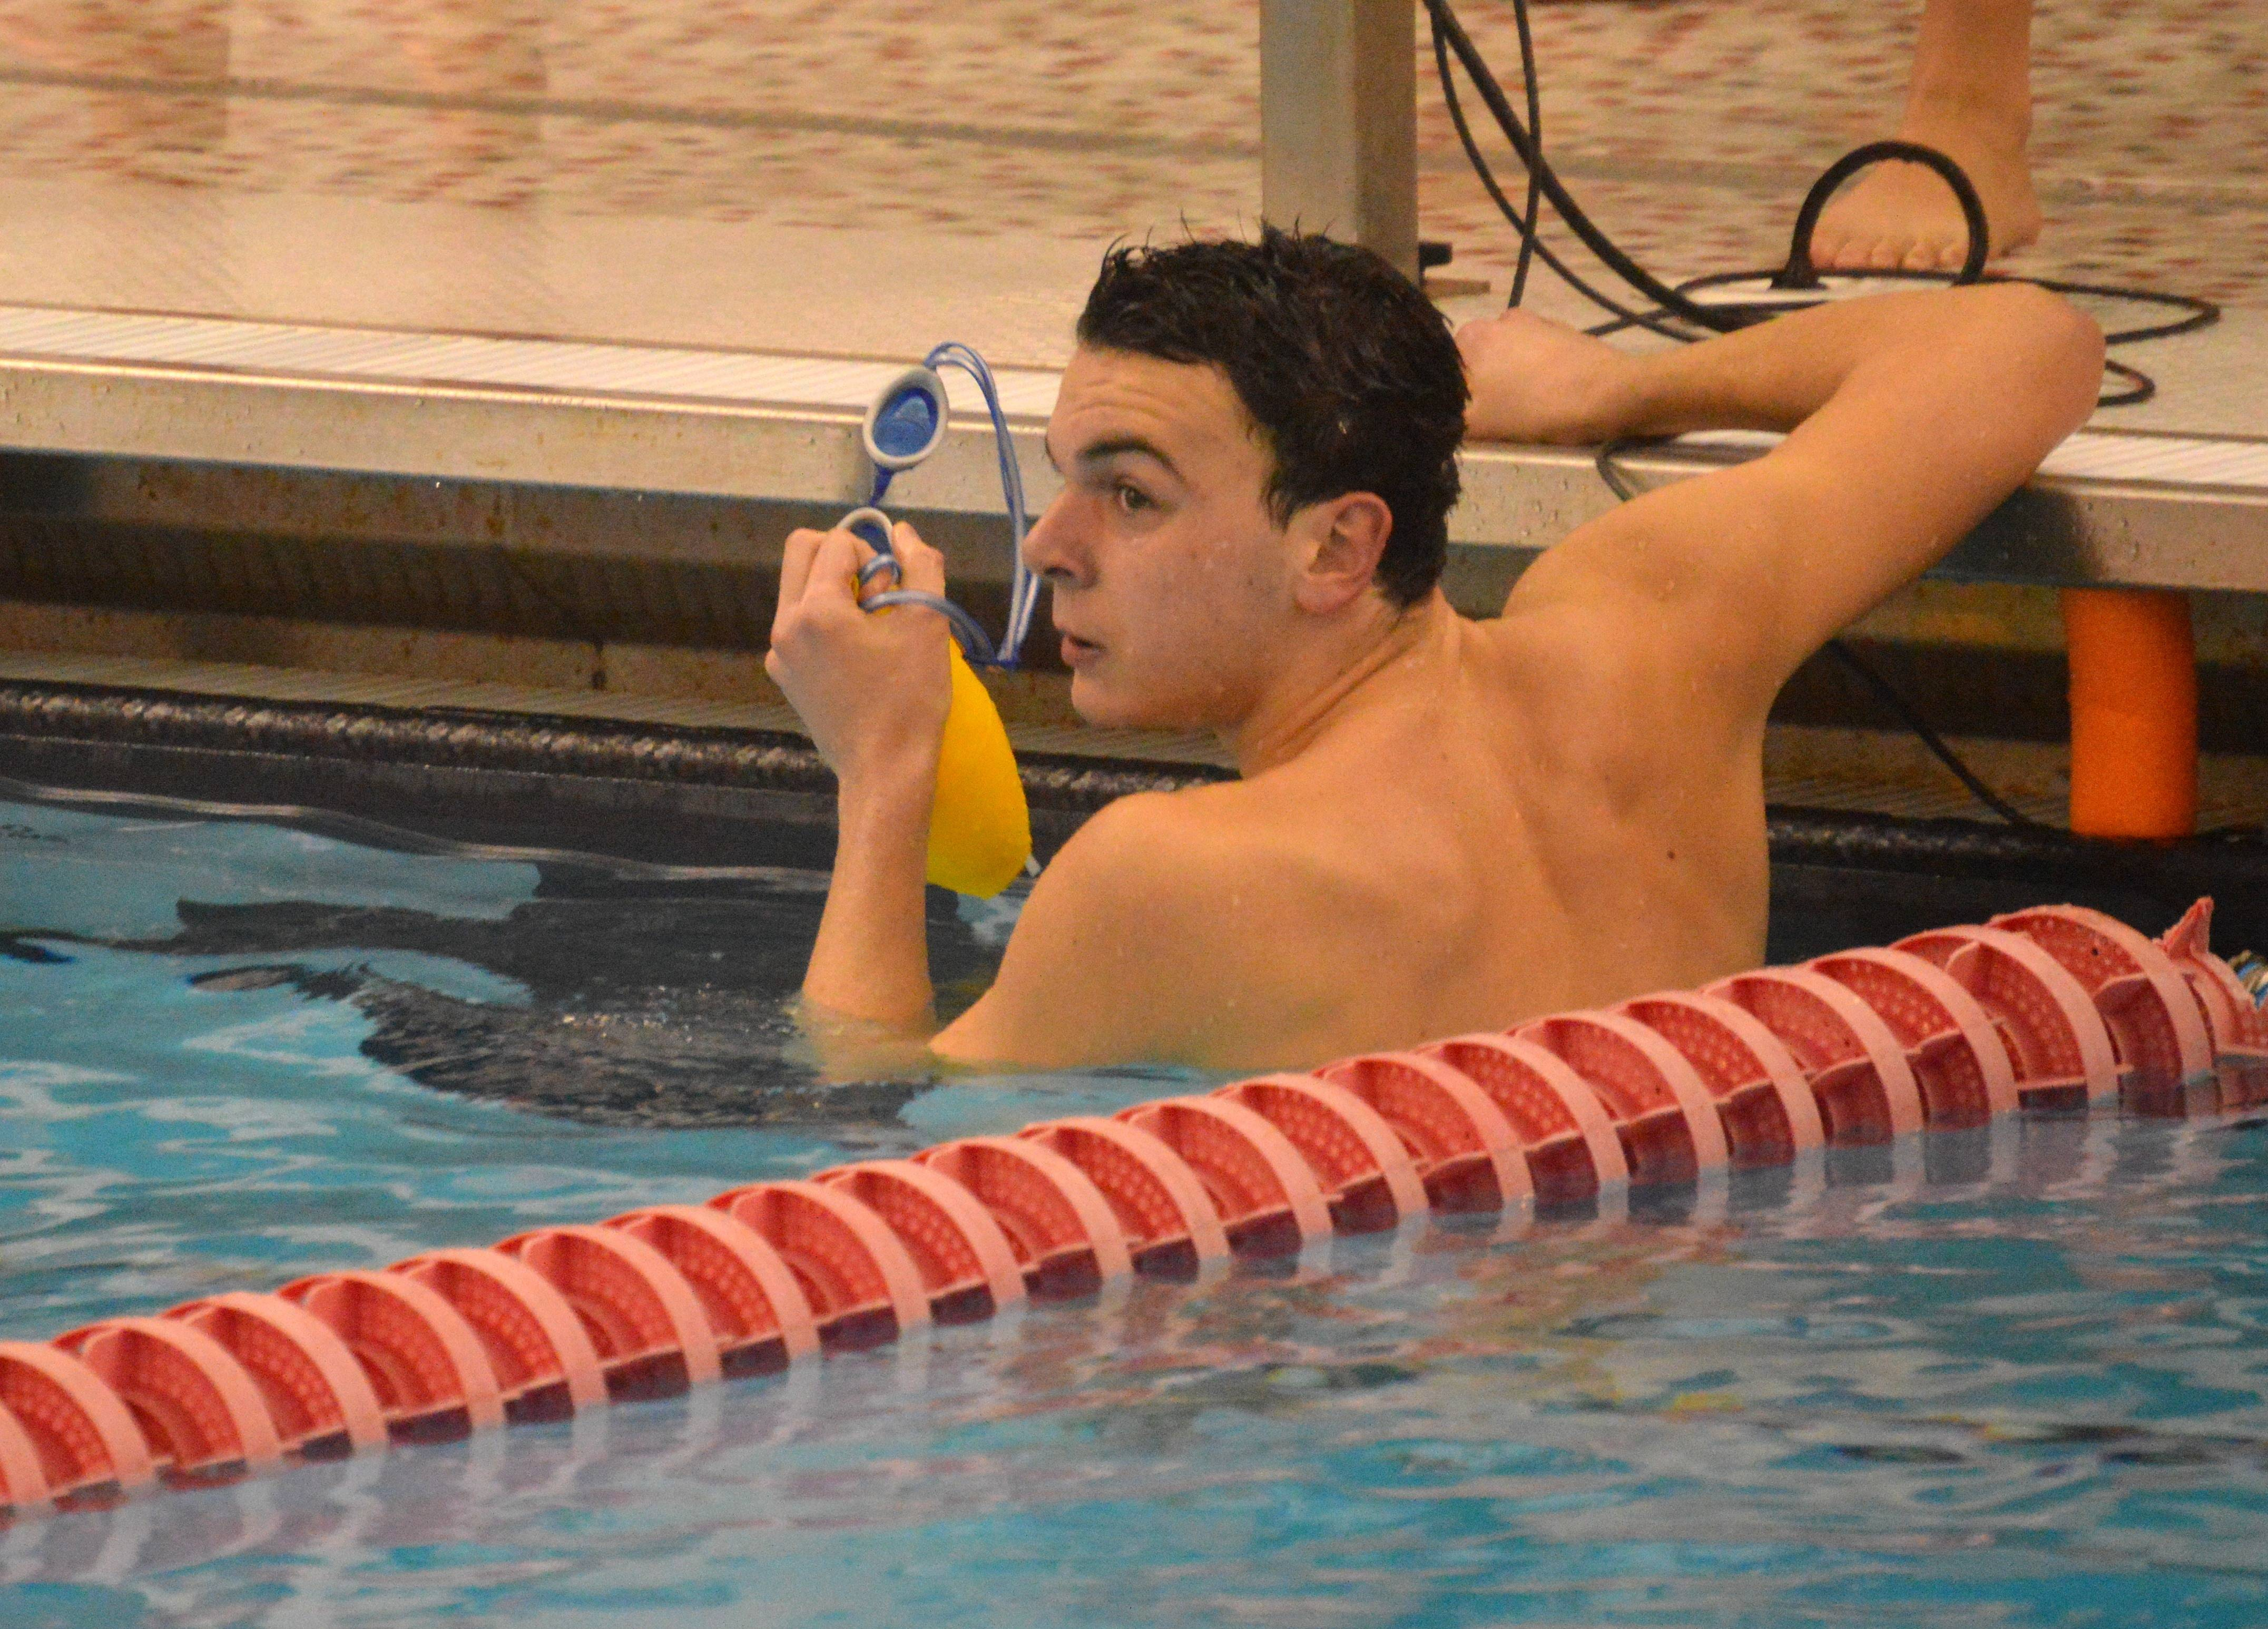 b175346a6d332e3c835e_1-10-17_backstroke_winner.JPG